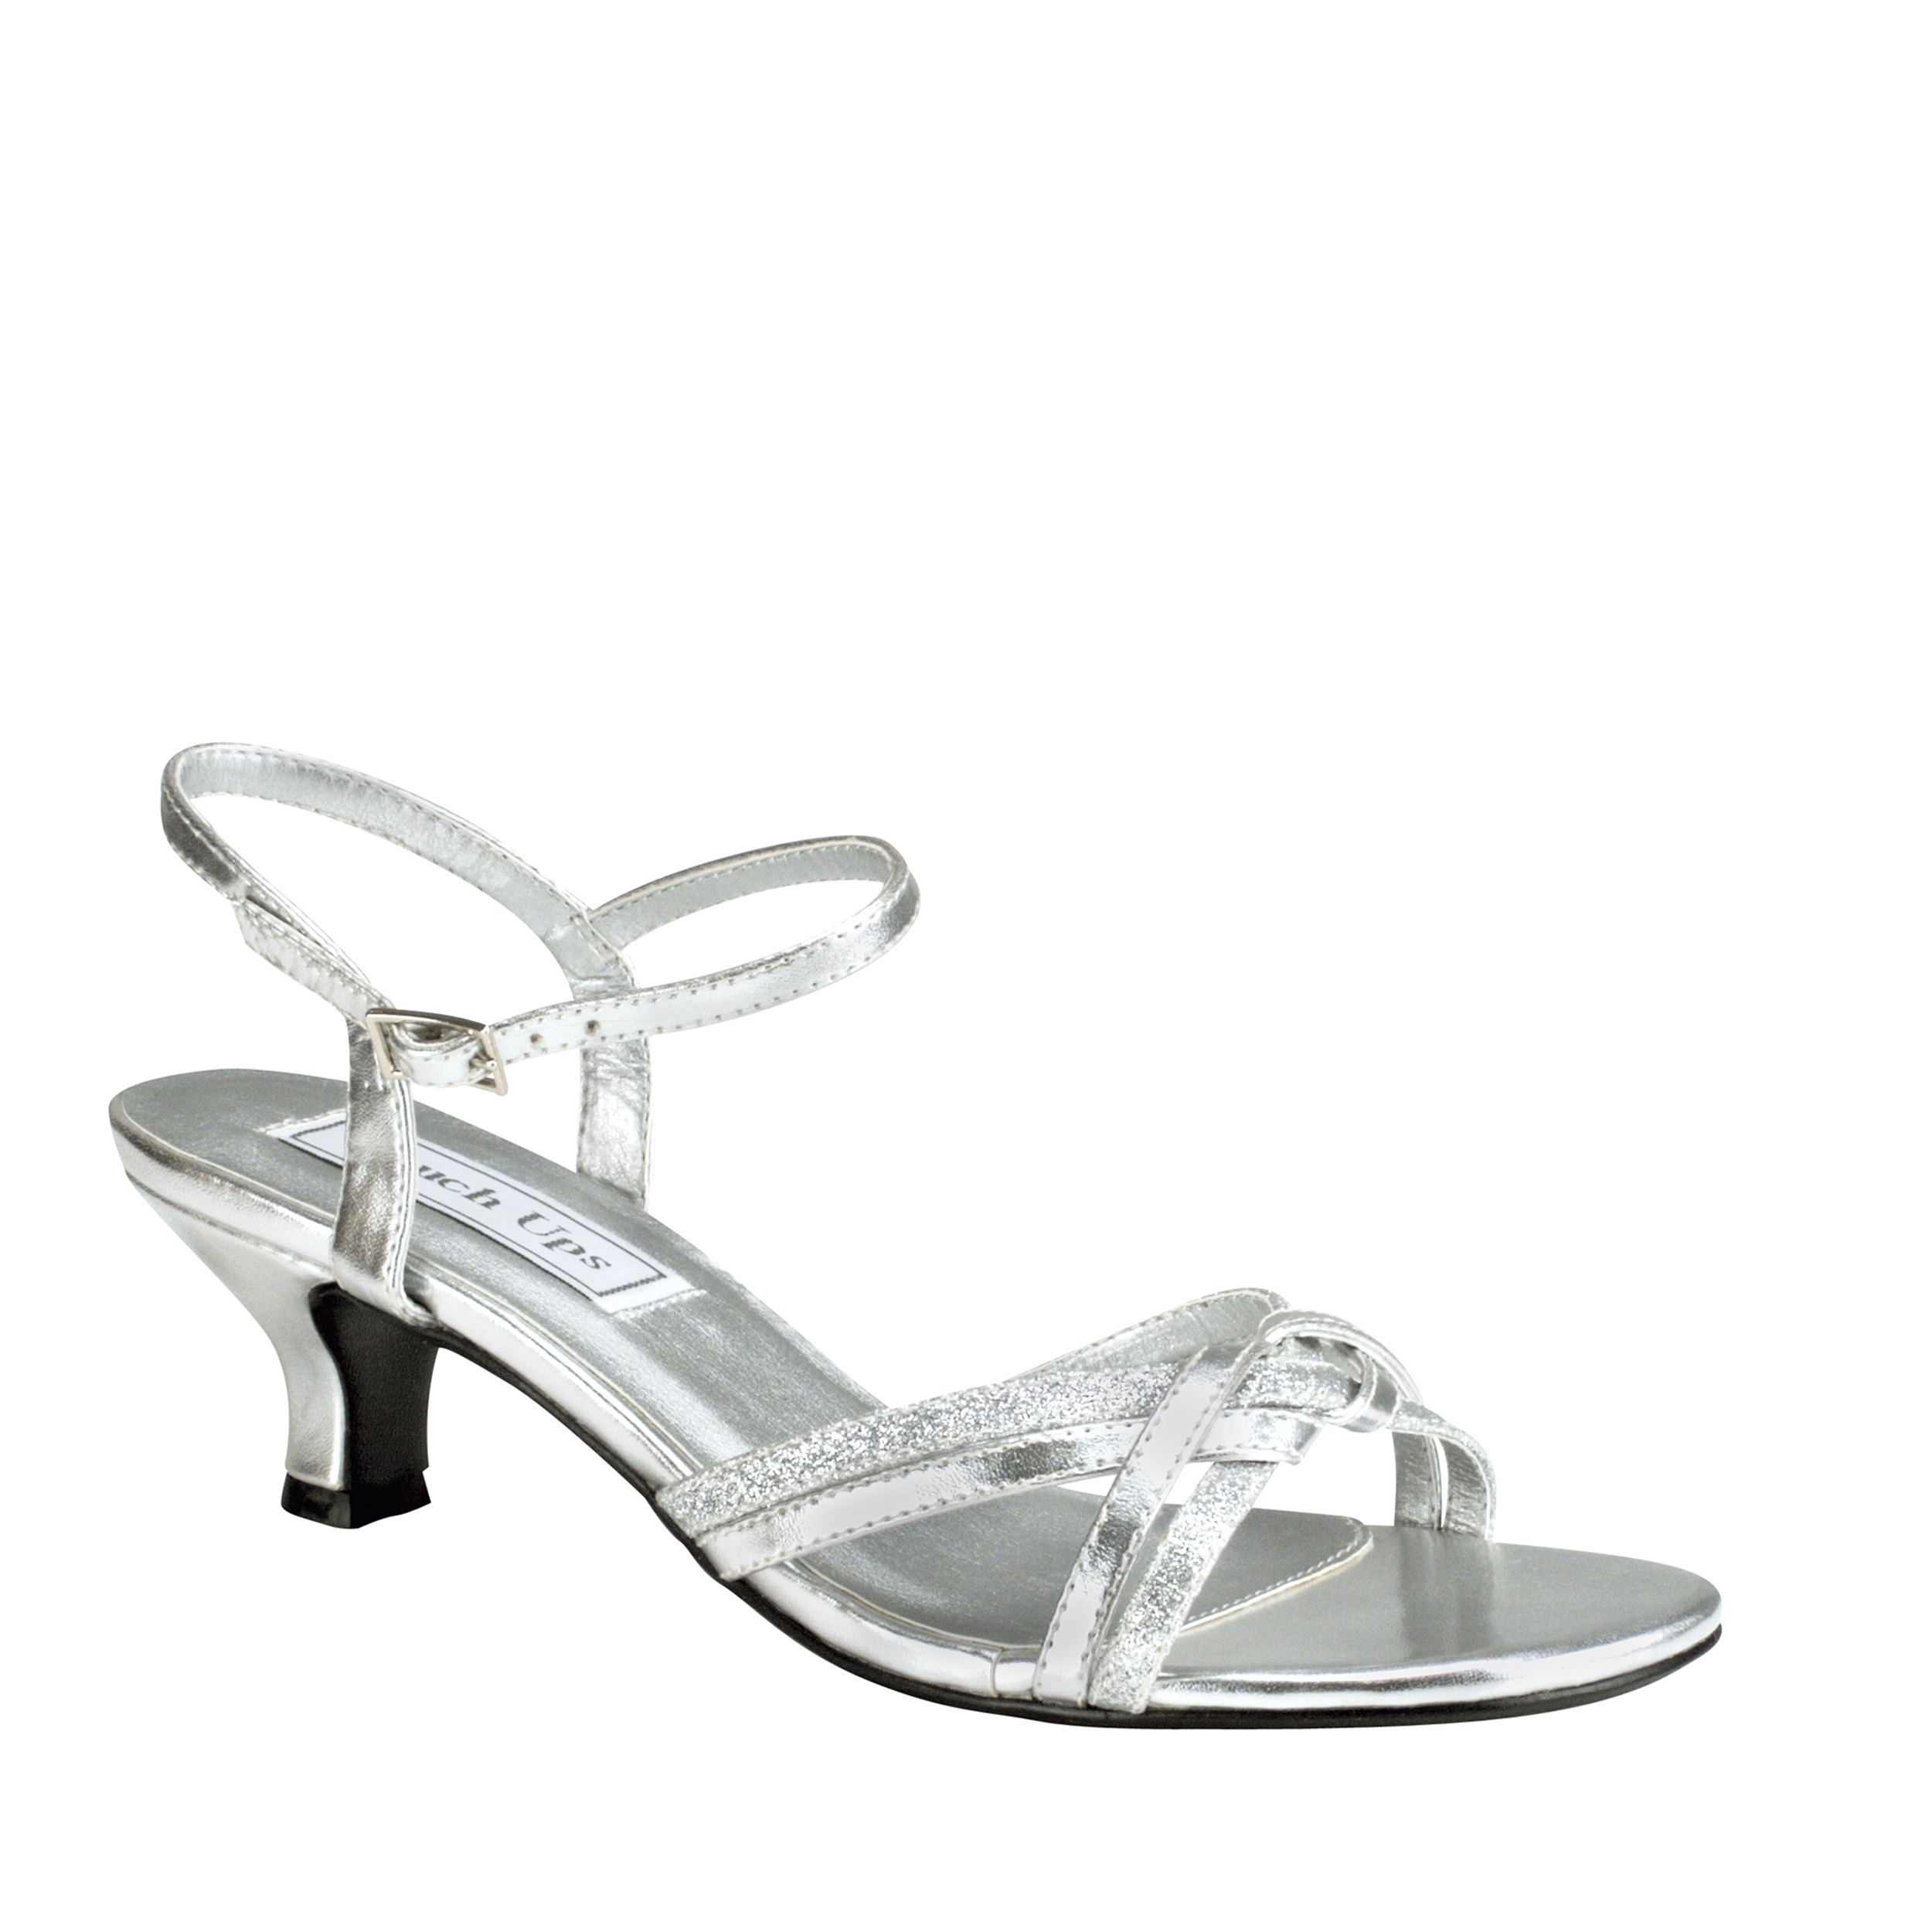 Touch Ups Melanie Womens Silver Sandals 11 W by